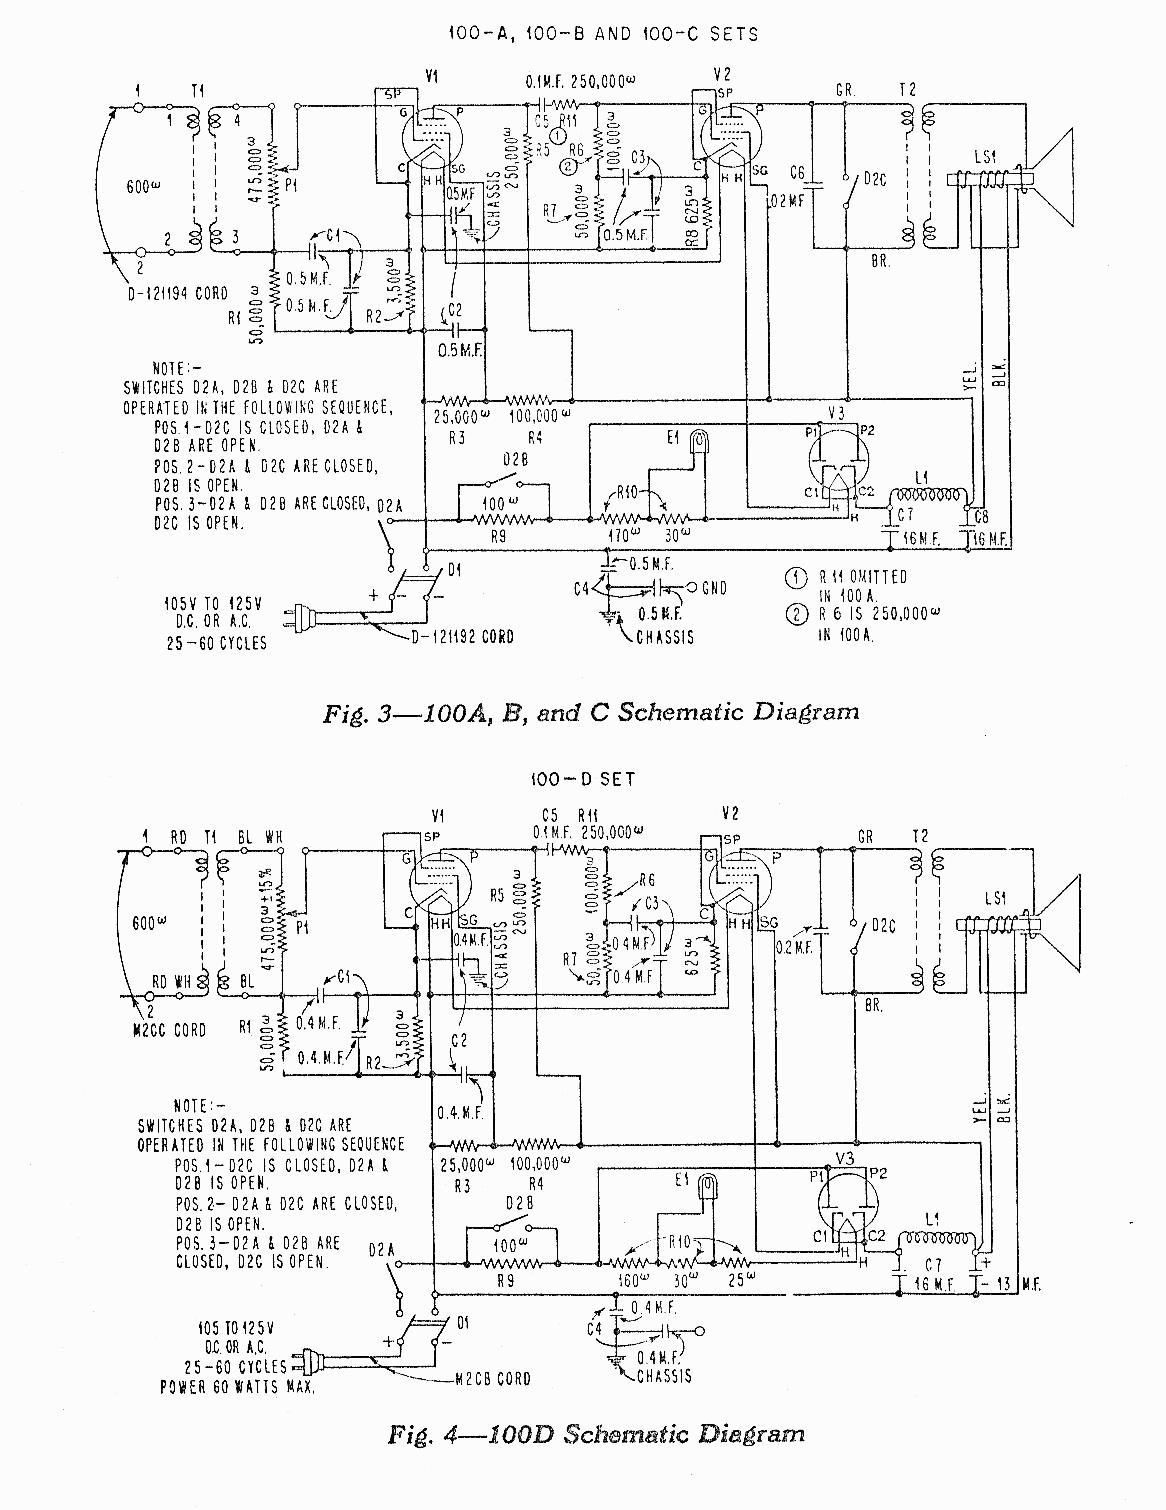 Western Electric 302 Wiring Diagram from www.kadiak.org